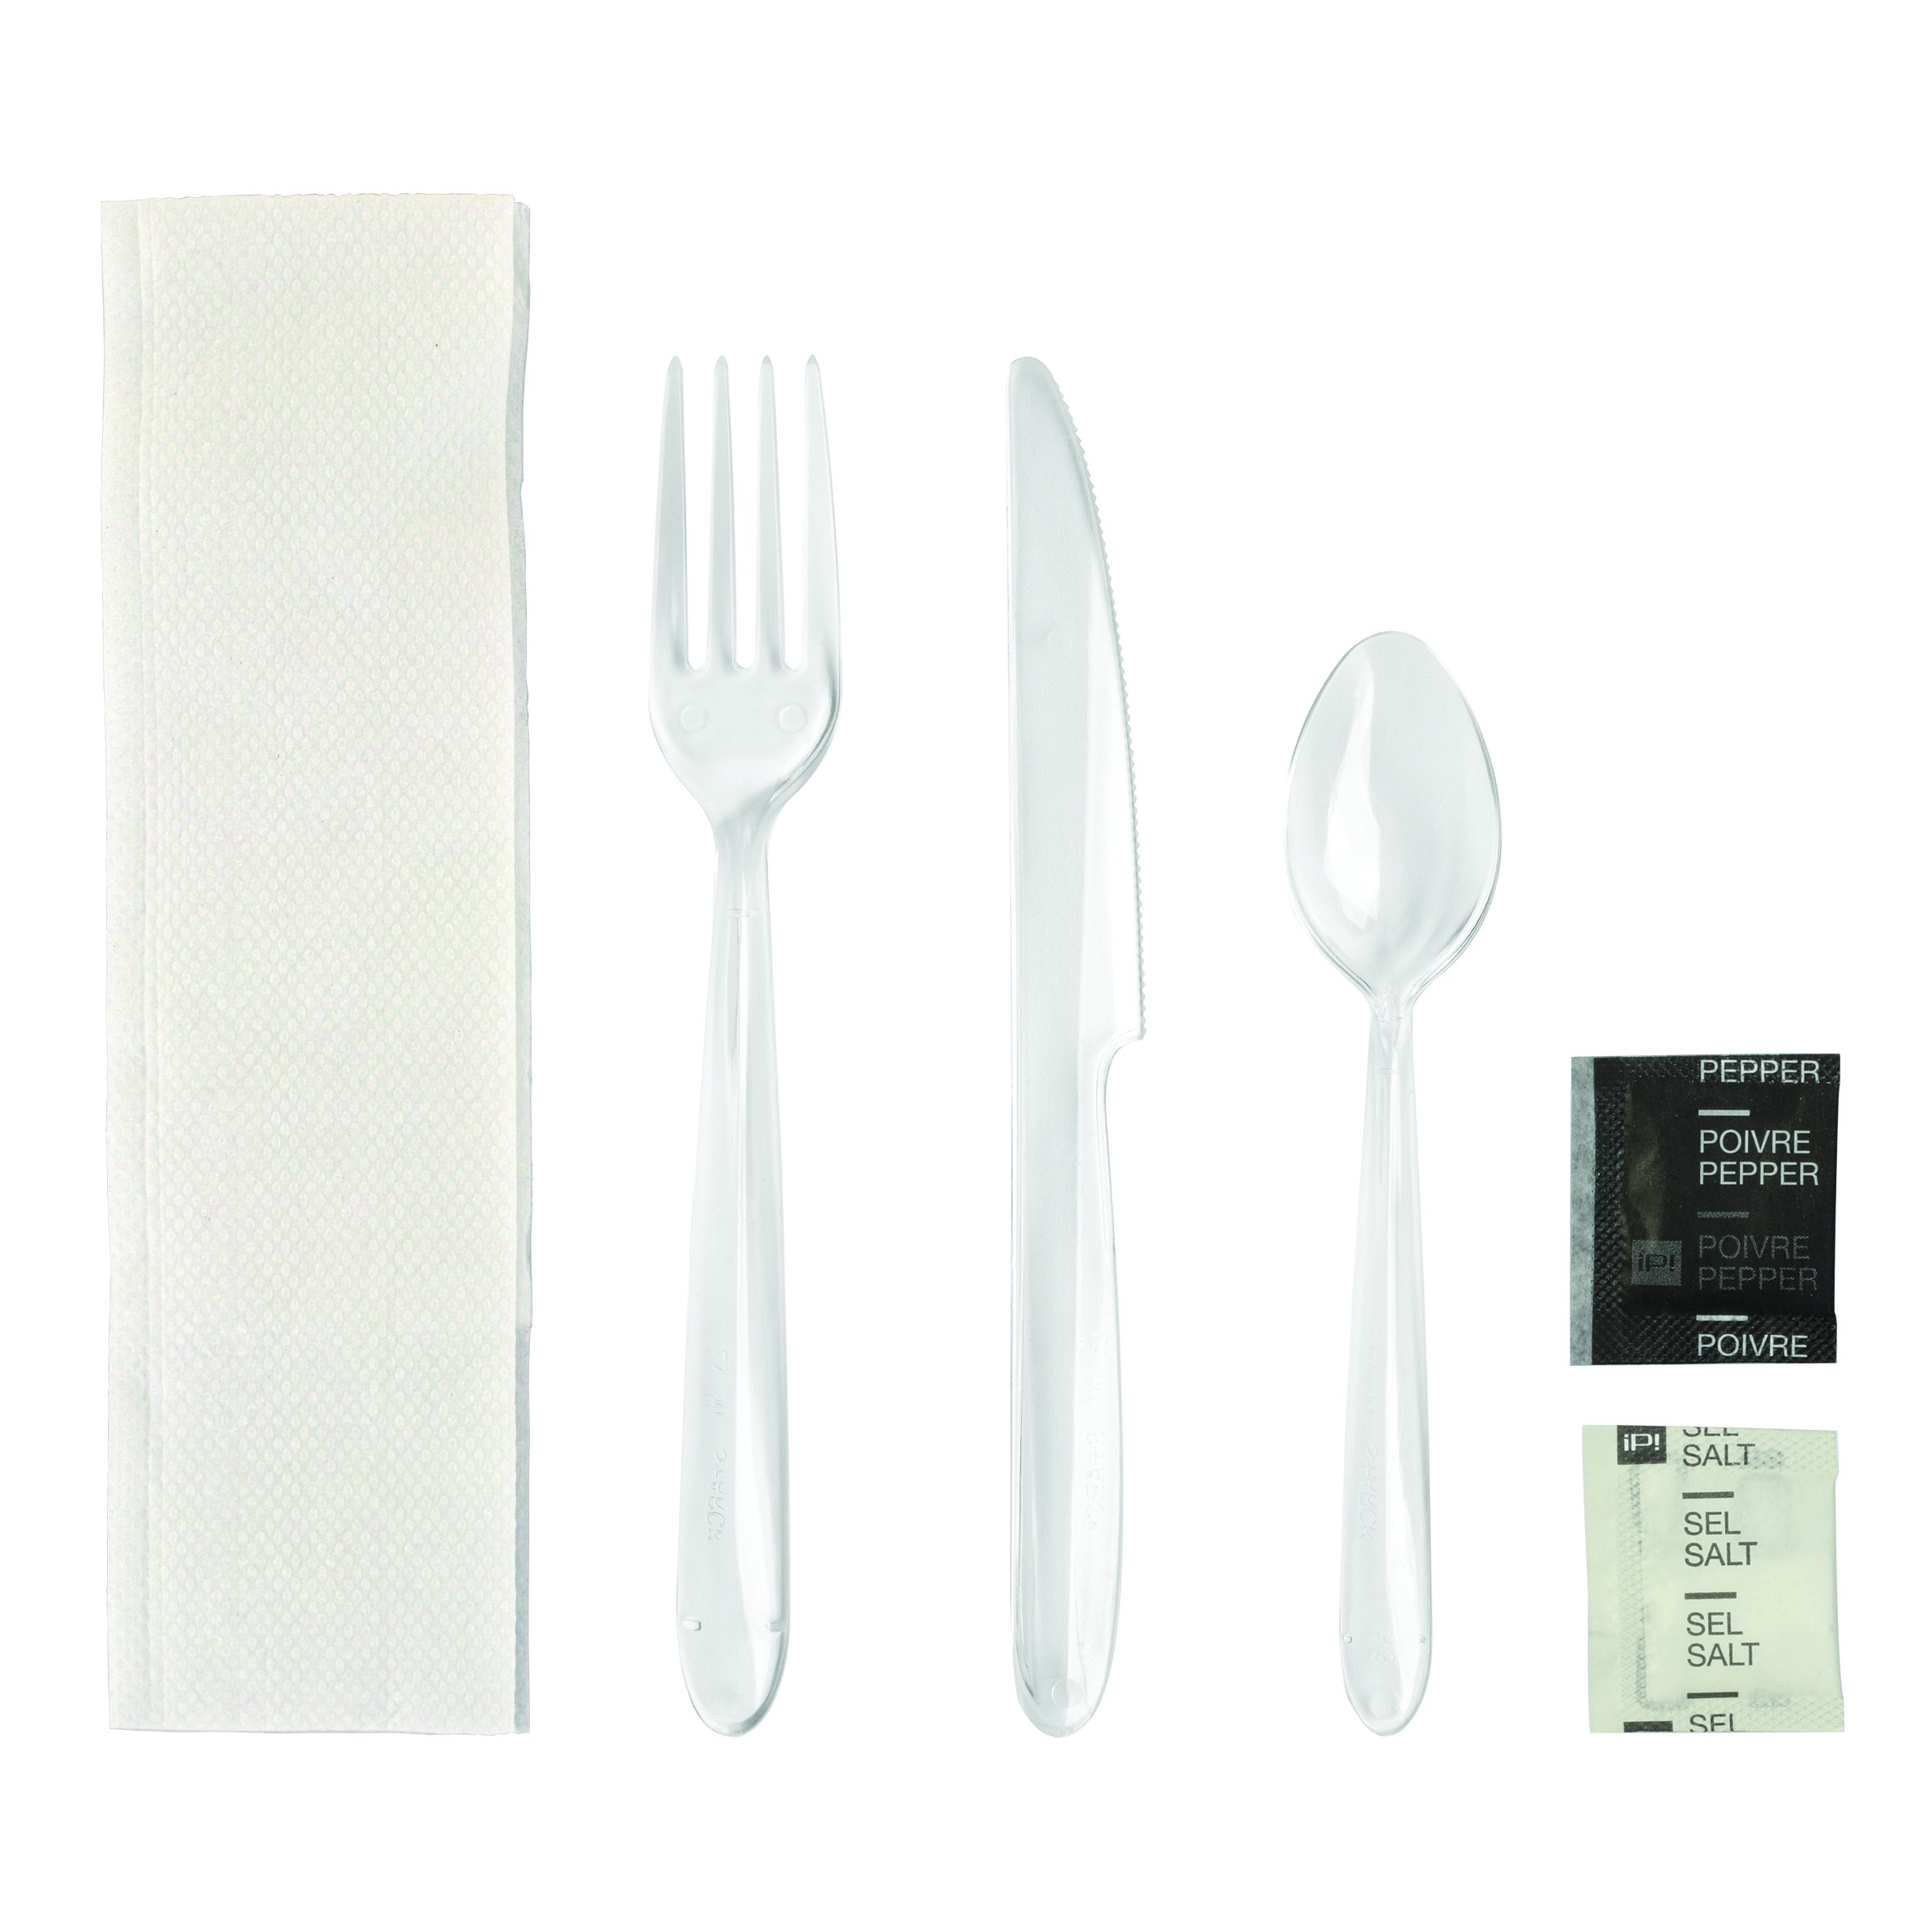 kit de couverts jetables plastique transparent 6 en 1